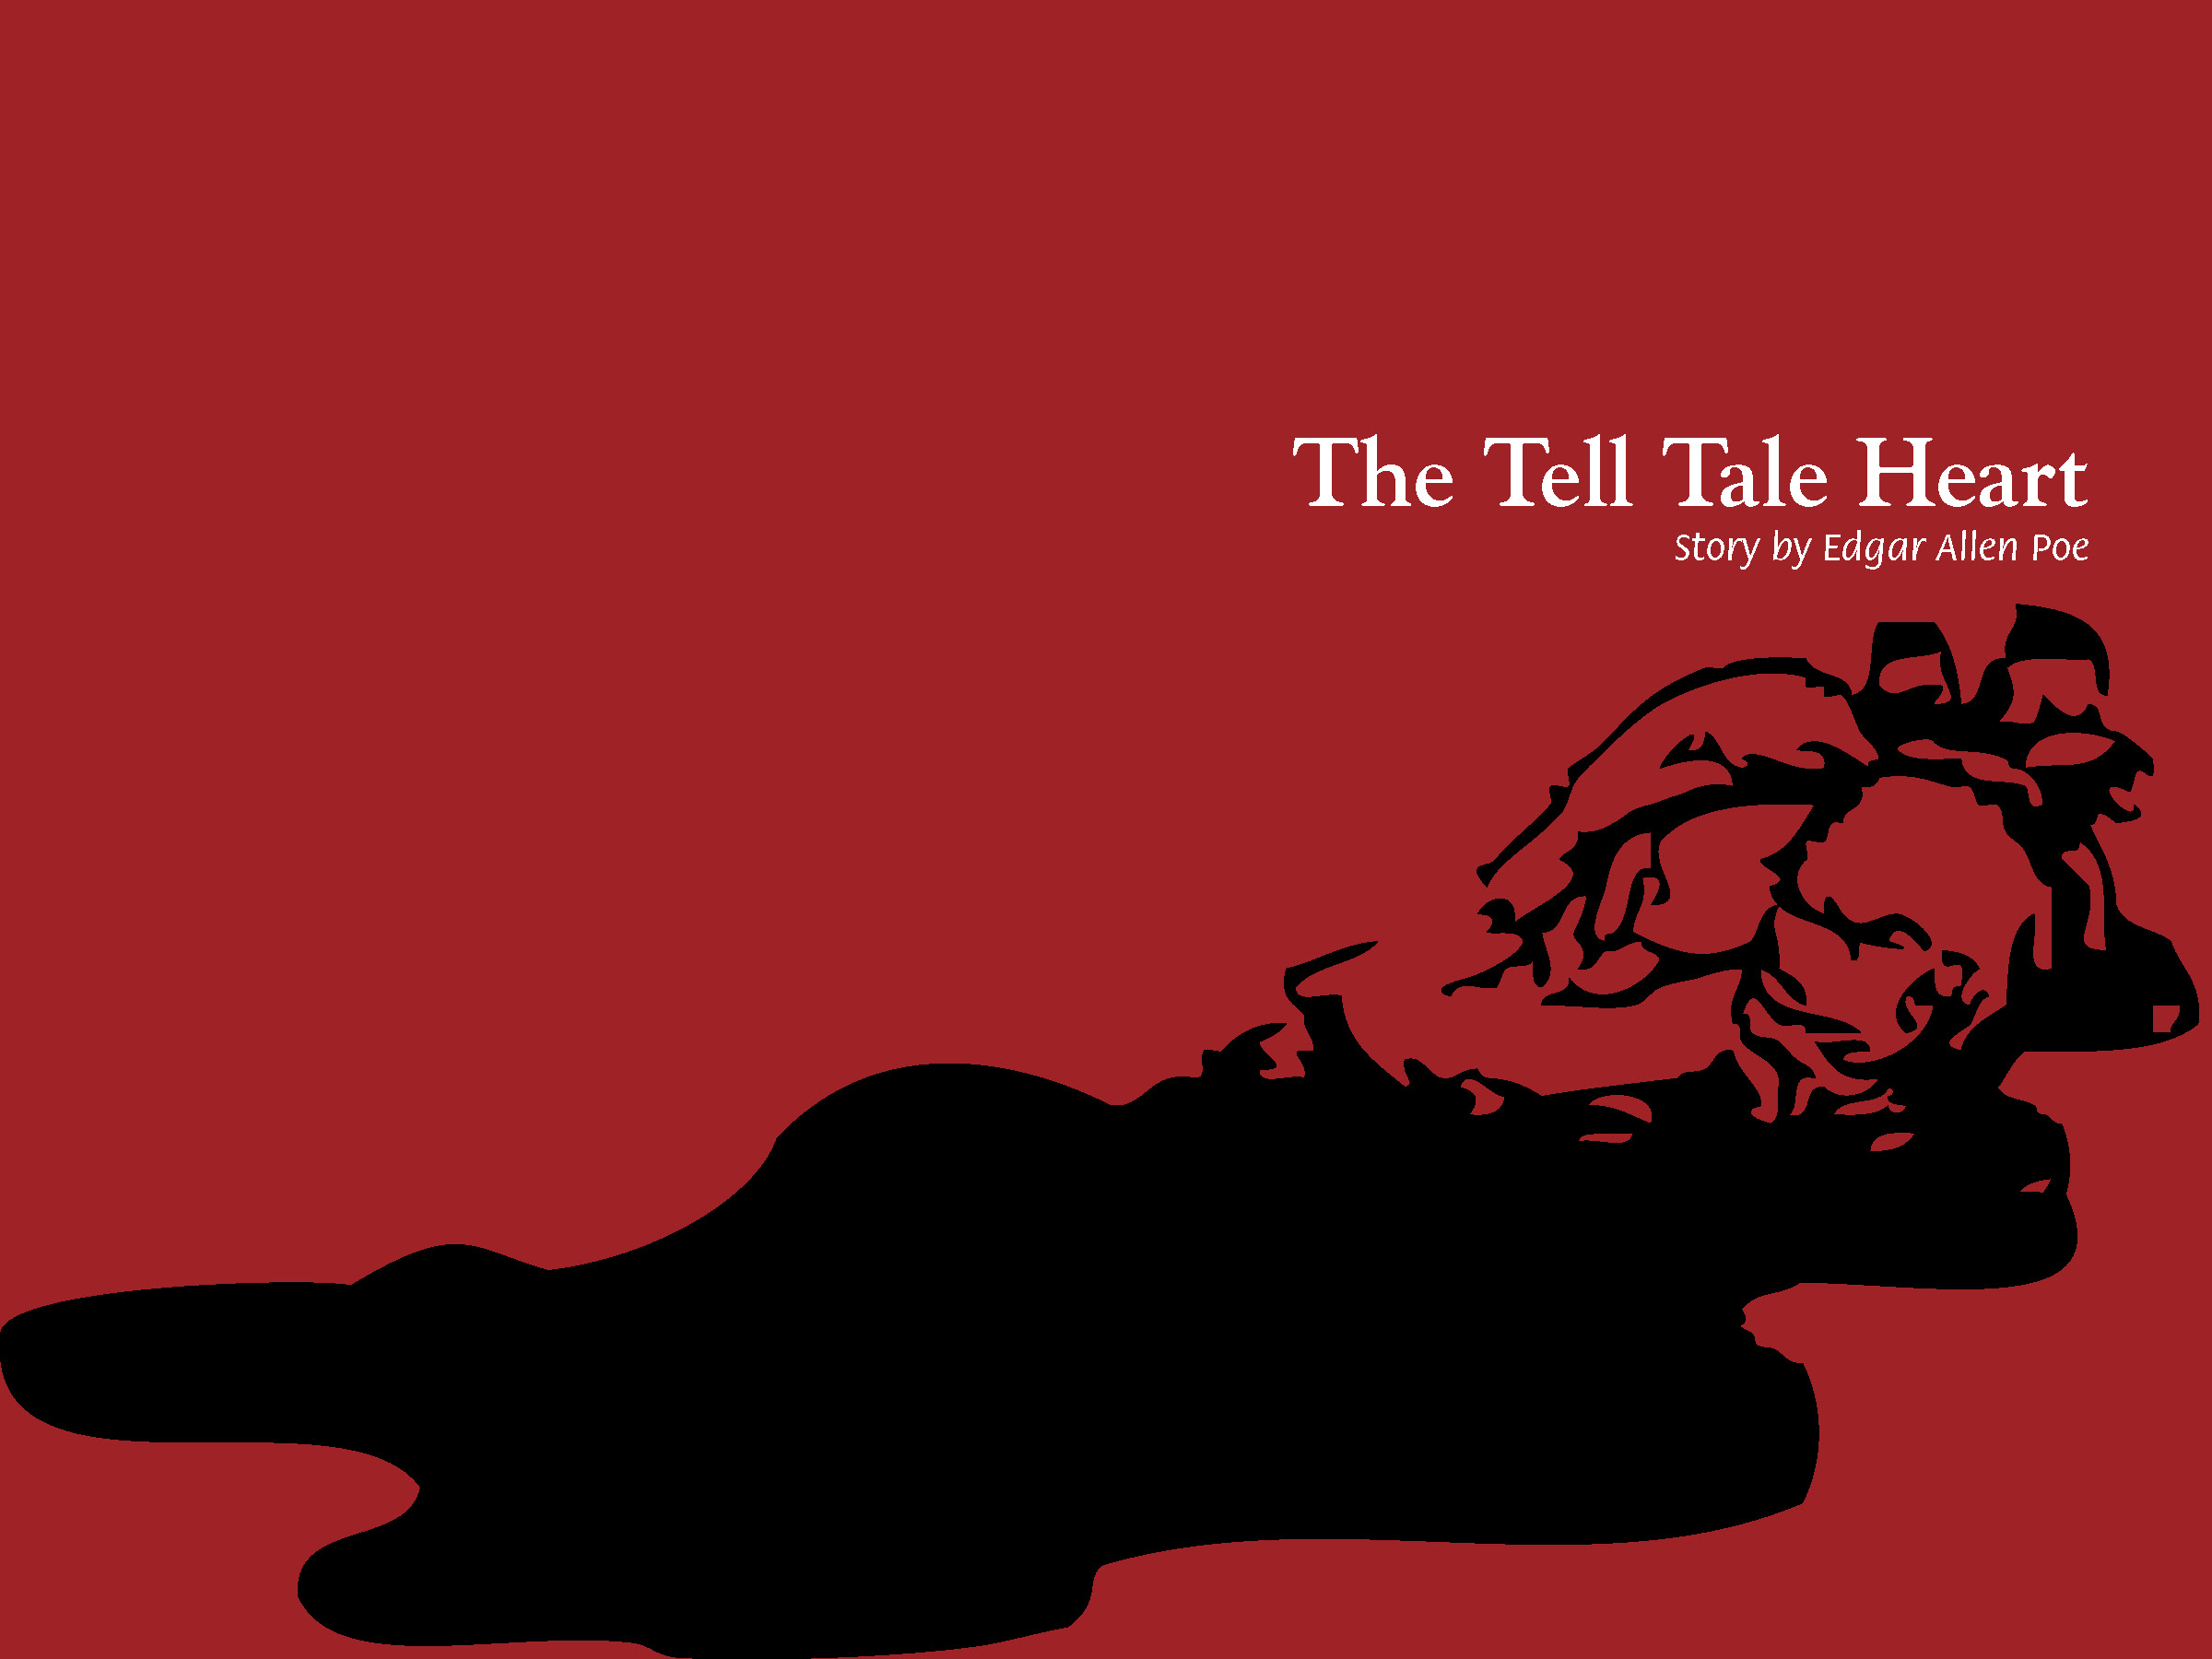 Essay on the tell tale heart